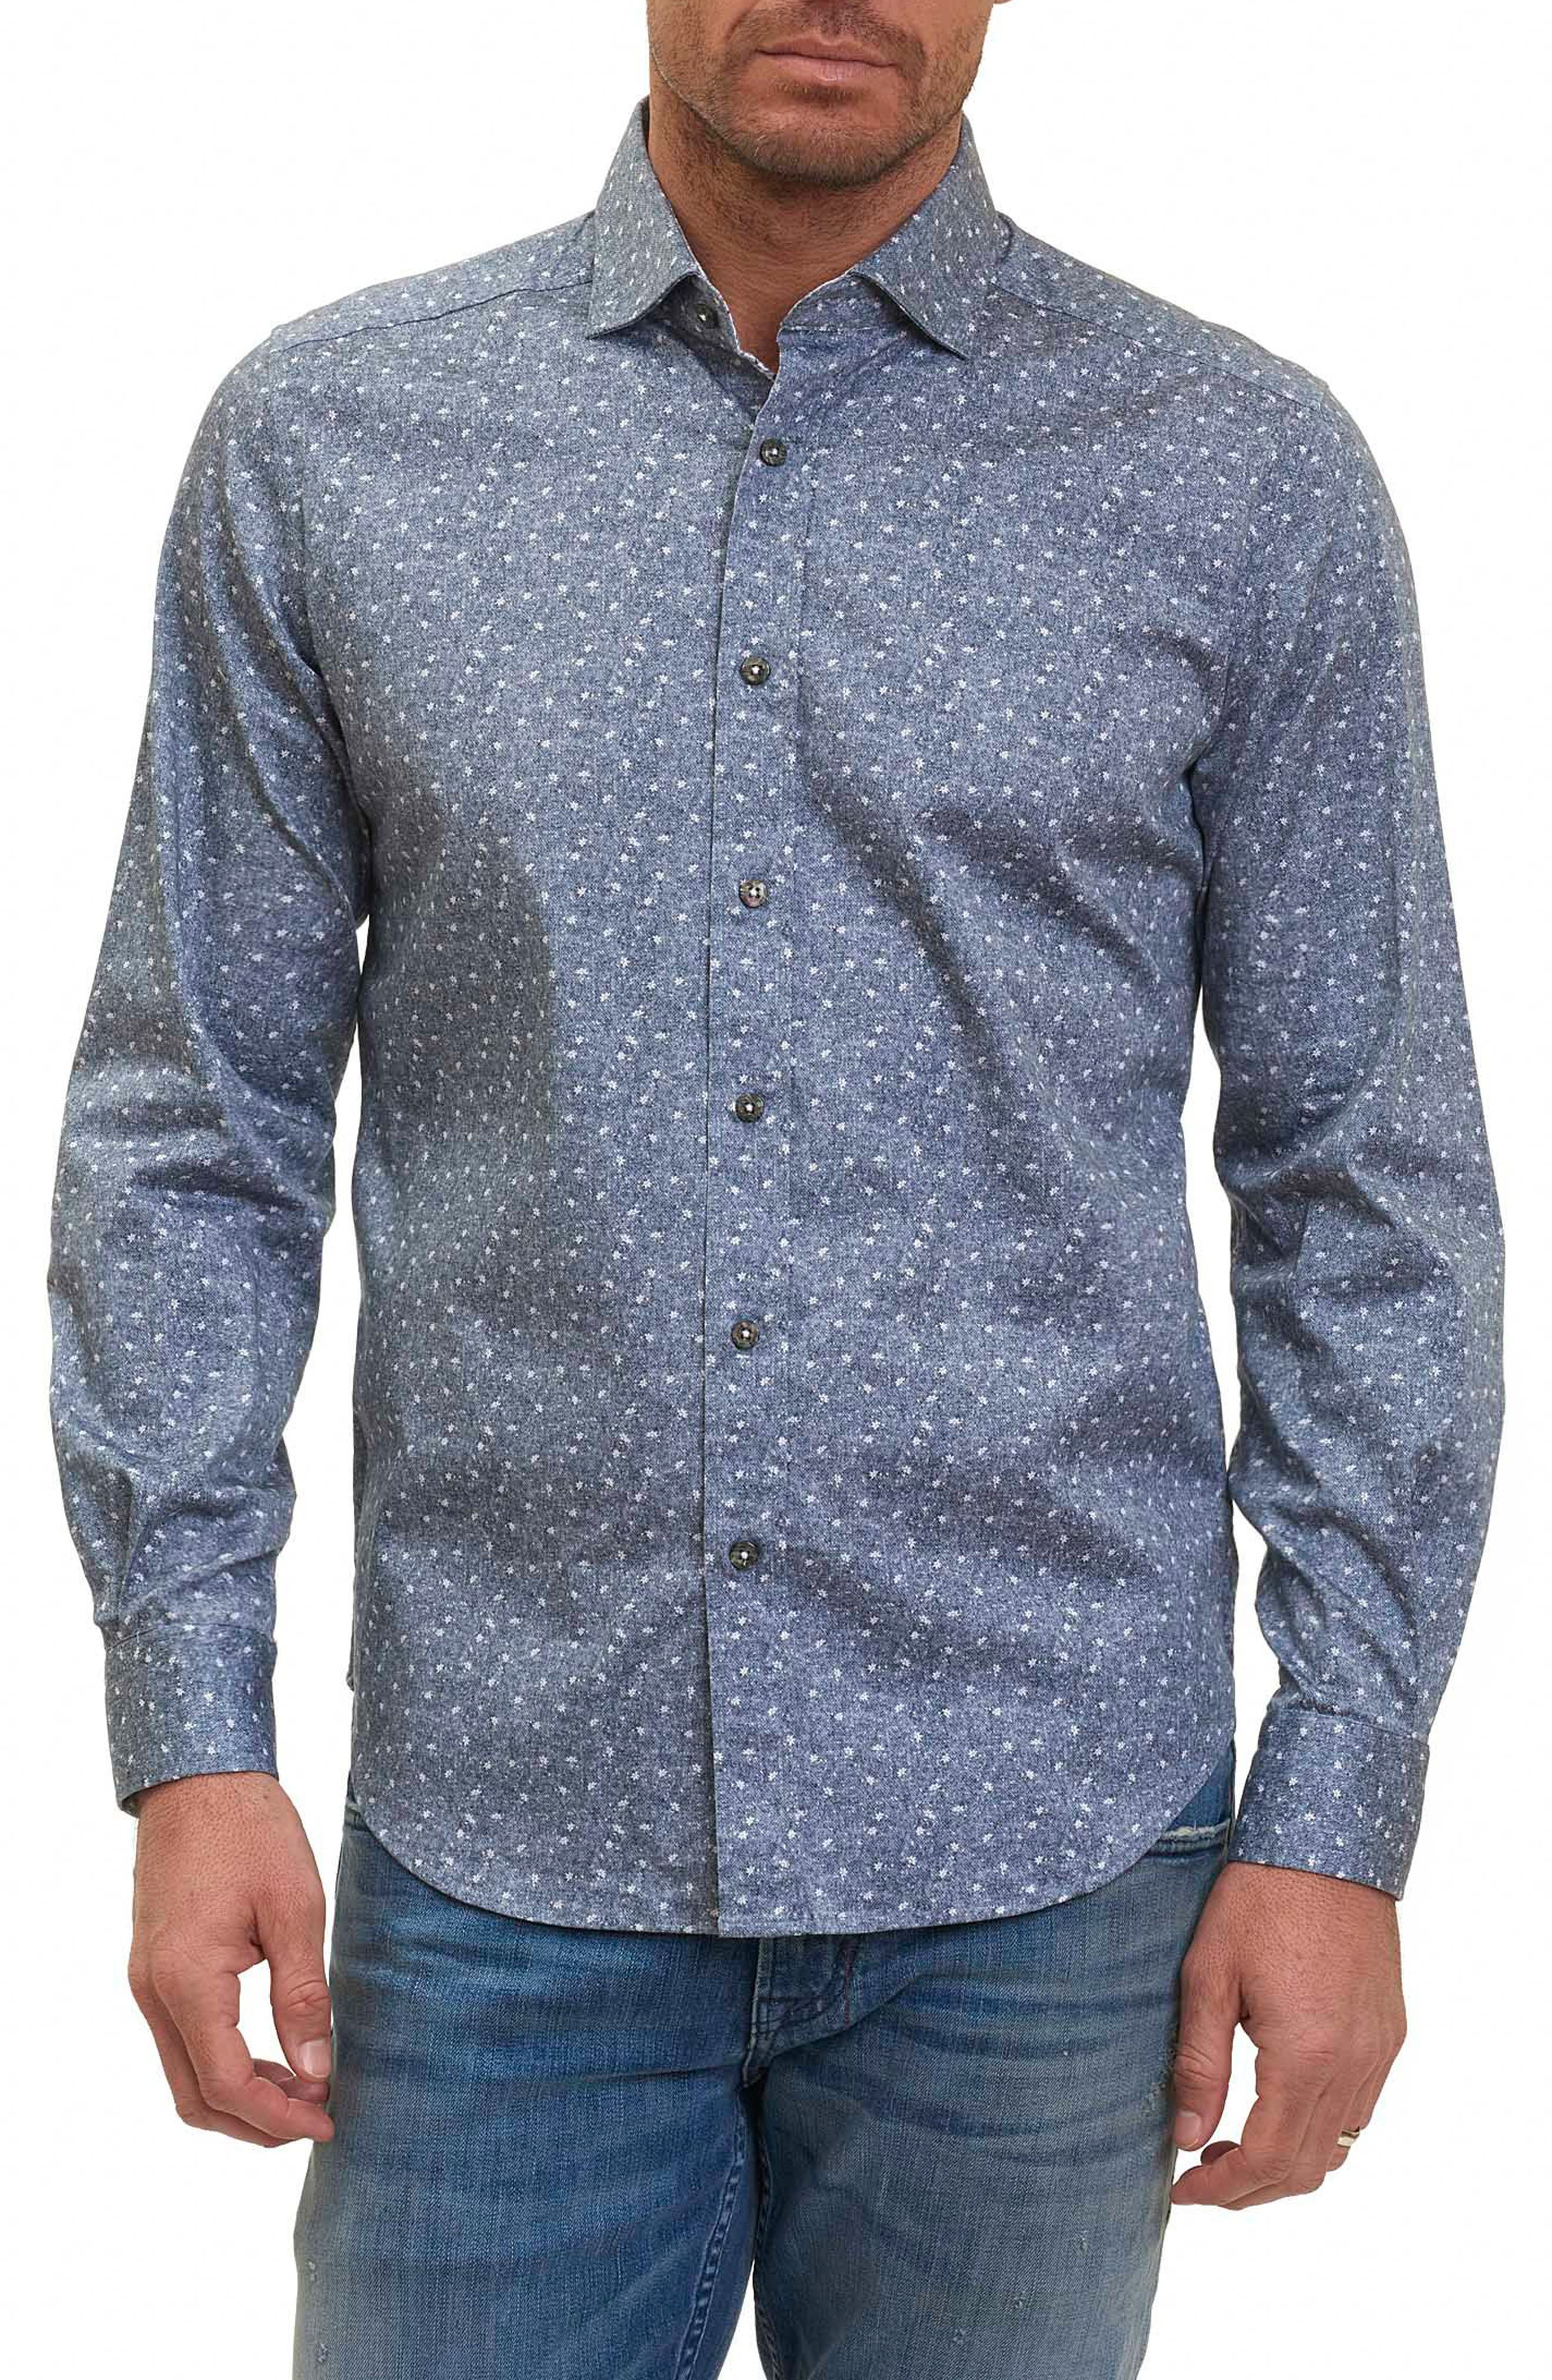 Zander Tailored Fit Sport Shirt,                         Main,                         color, 020